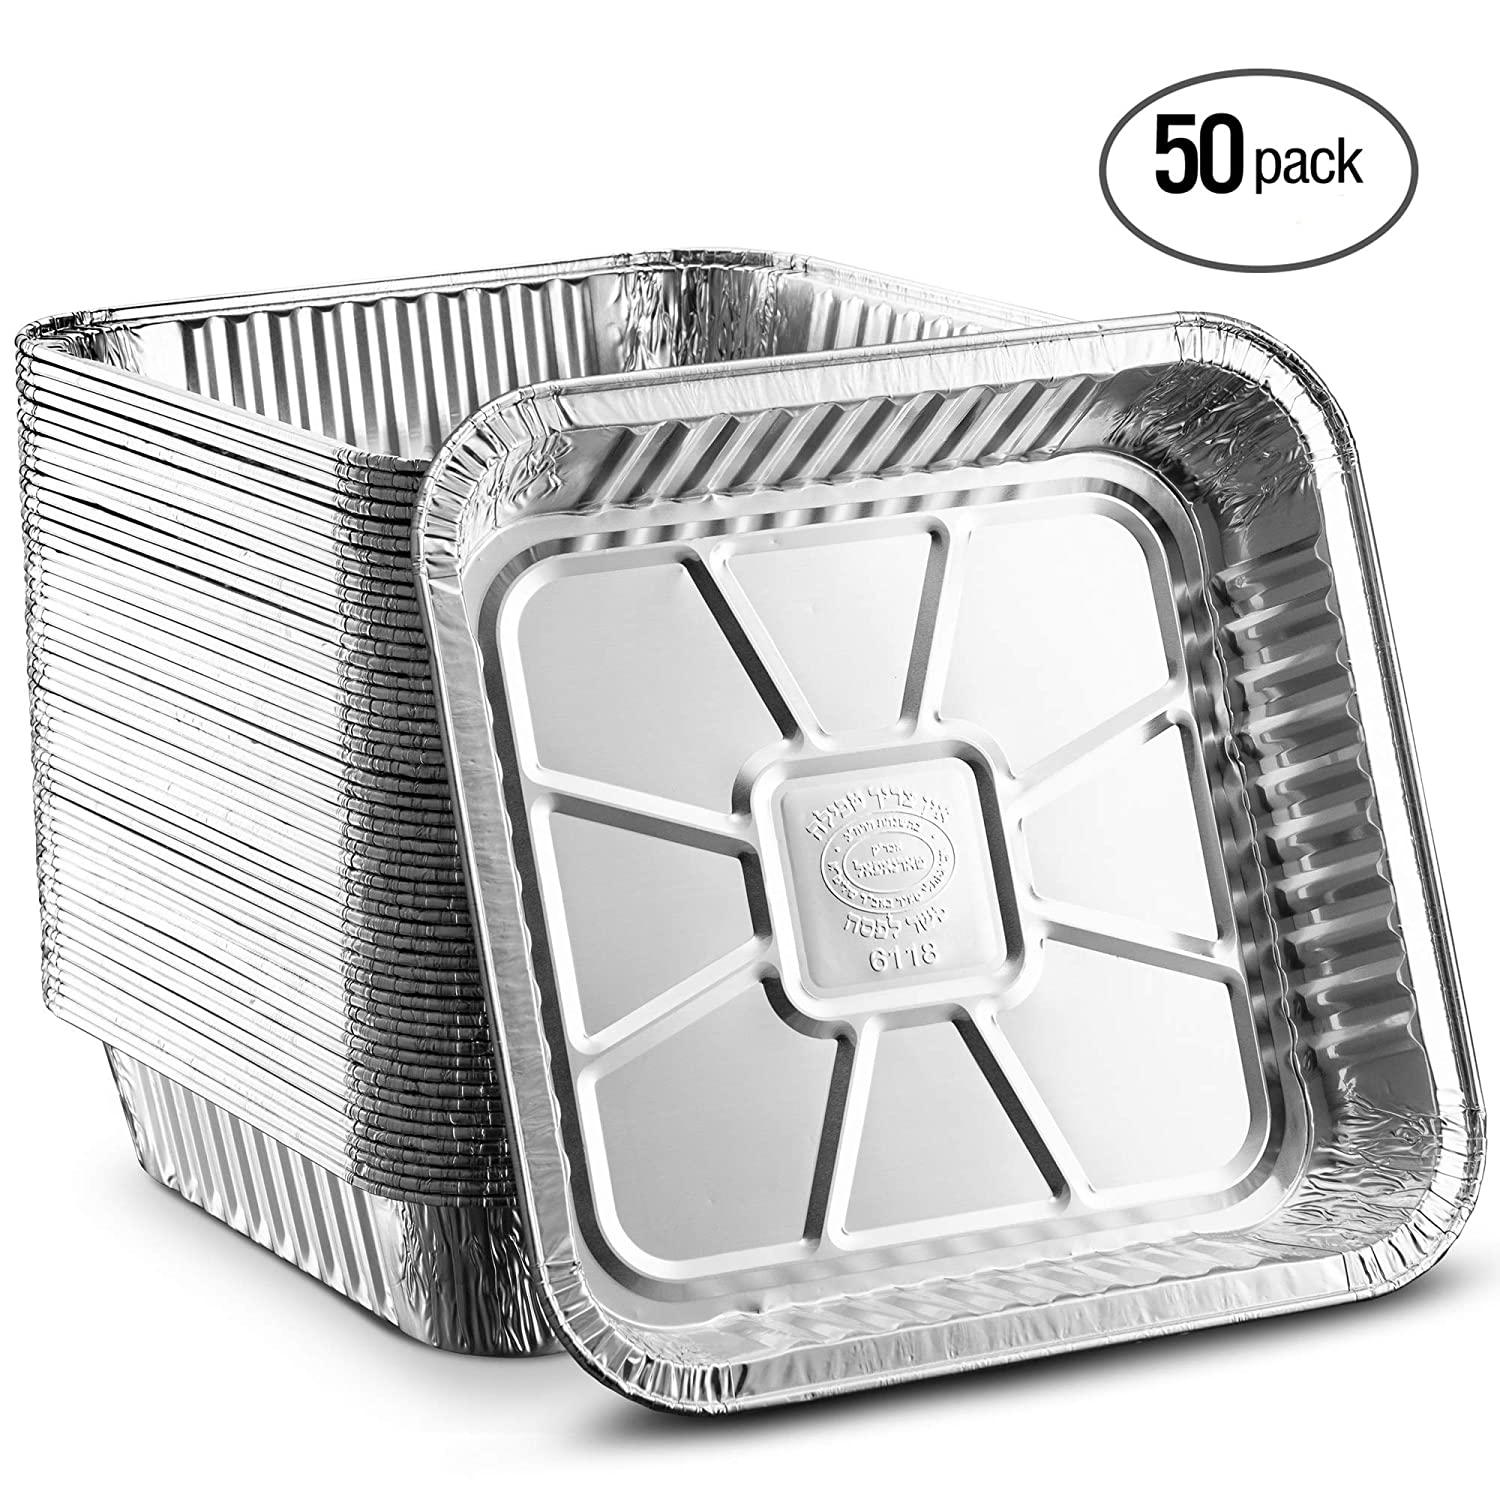 Propack Square baking Pans 8''x8'' Disposable Aluminum Foil Baking Tins For Baking, Cooking, Broiling, Roasting Pack of 20 KCH Corporation